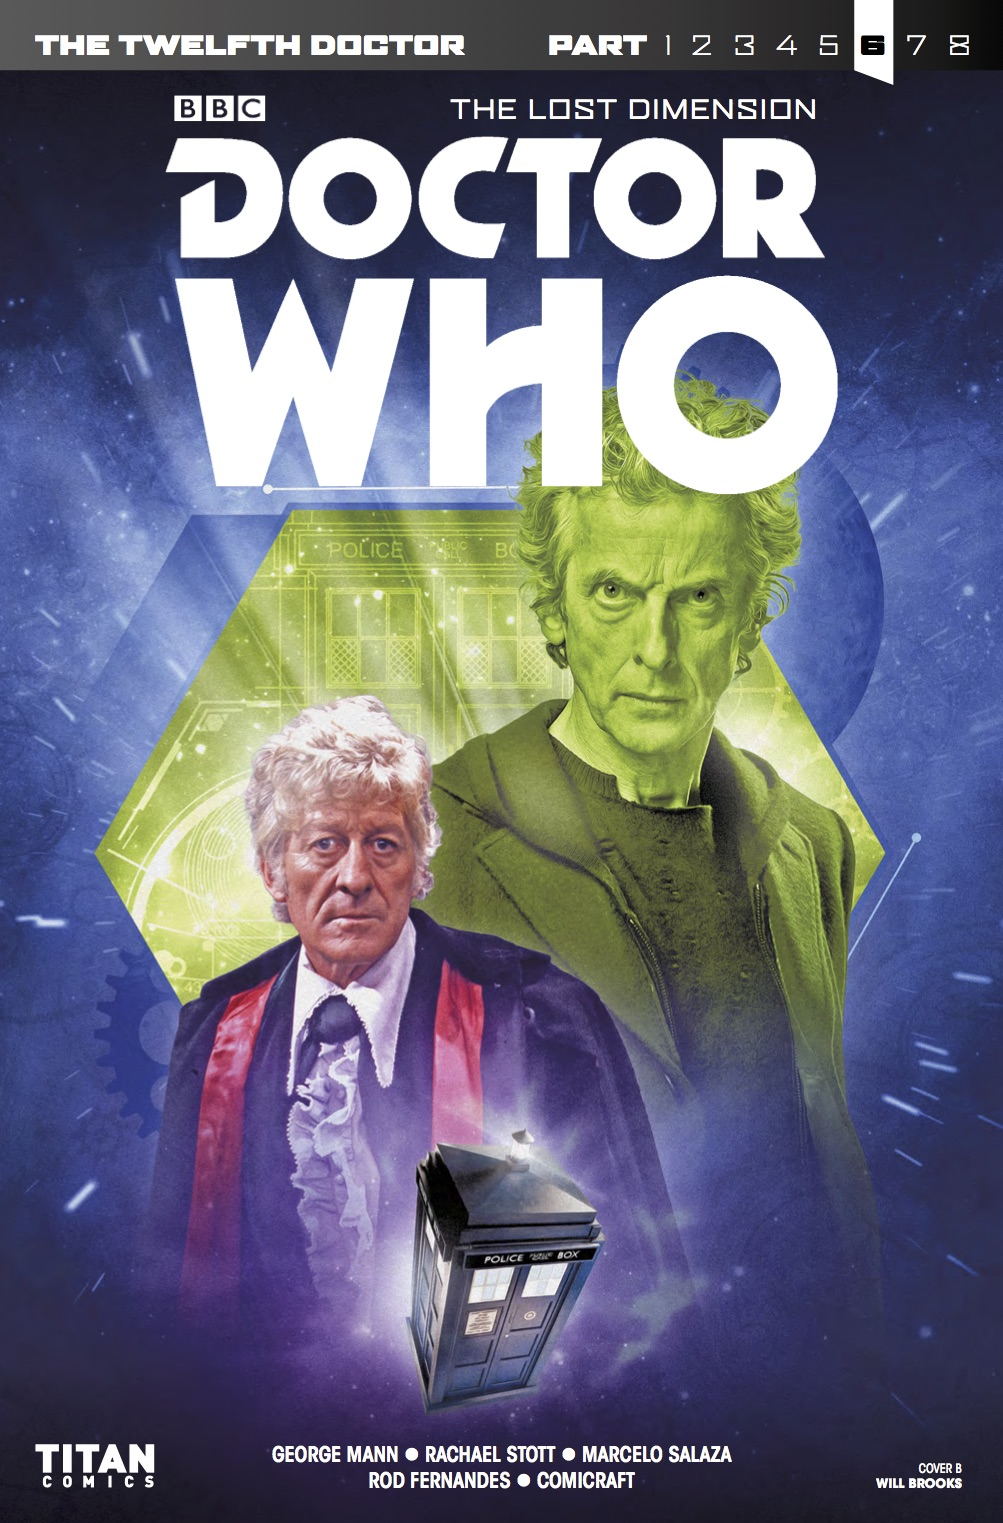 TWELFTH DOCTOR 3 8 - Cover B (Credit: Titan )